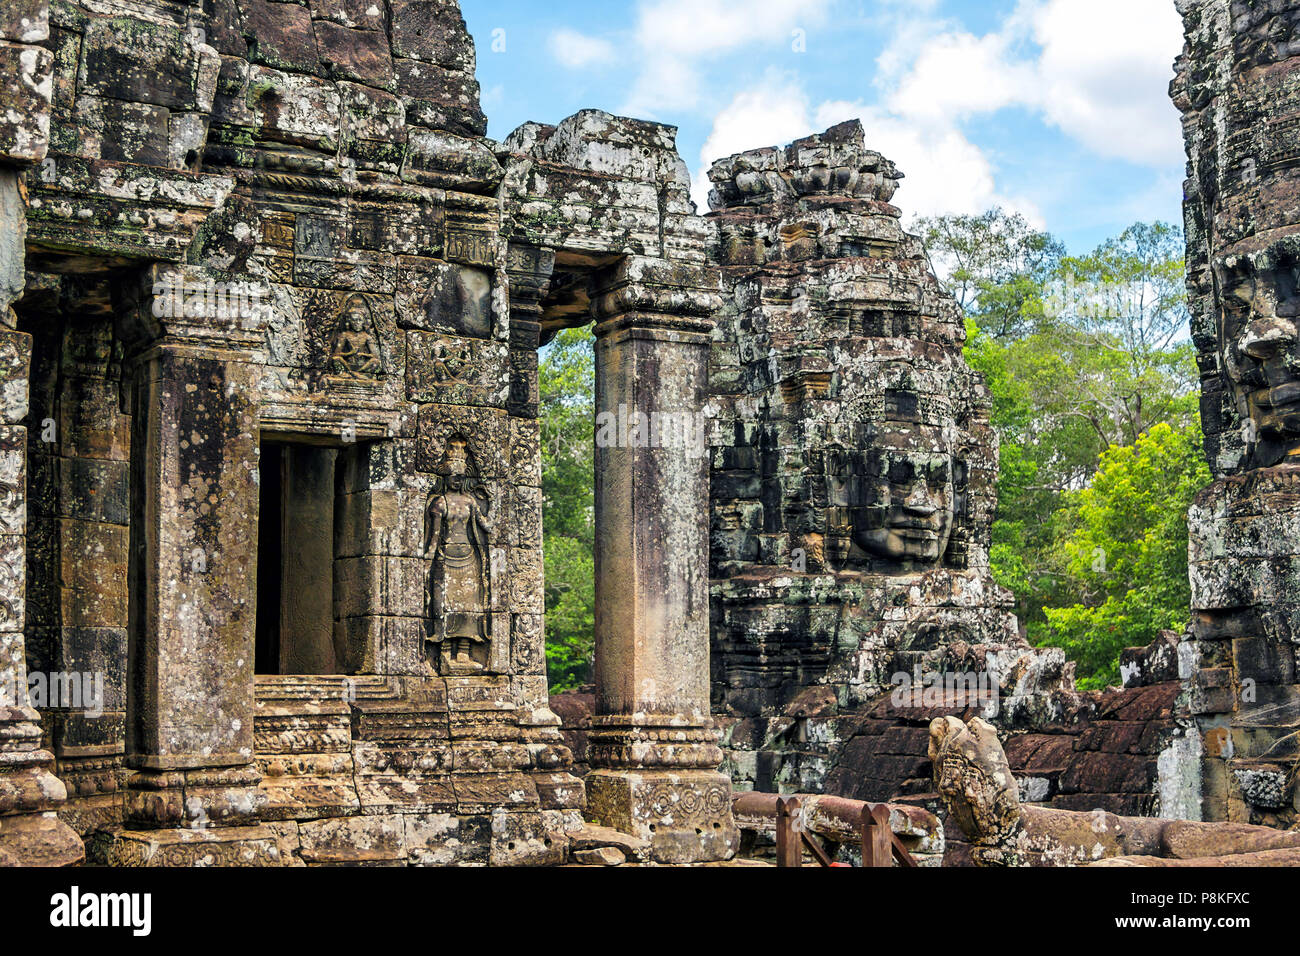 The famous Khmer temple of Angkor Tom in Cambodia. - Stock Image